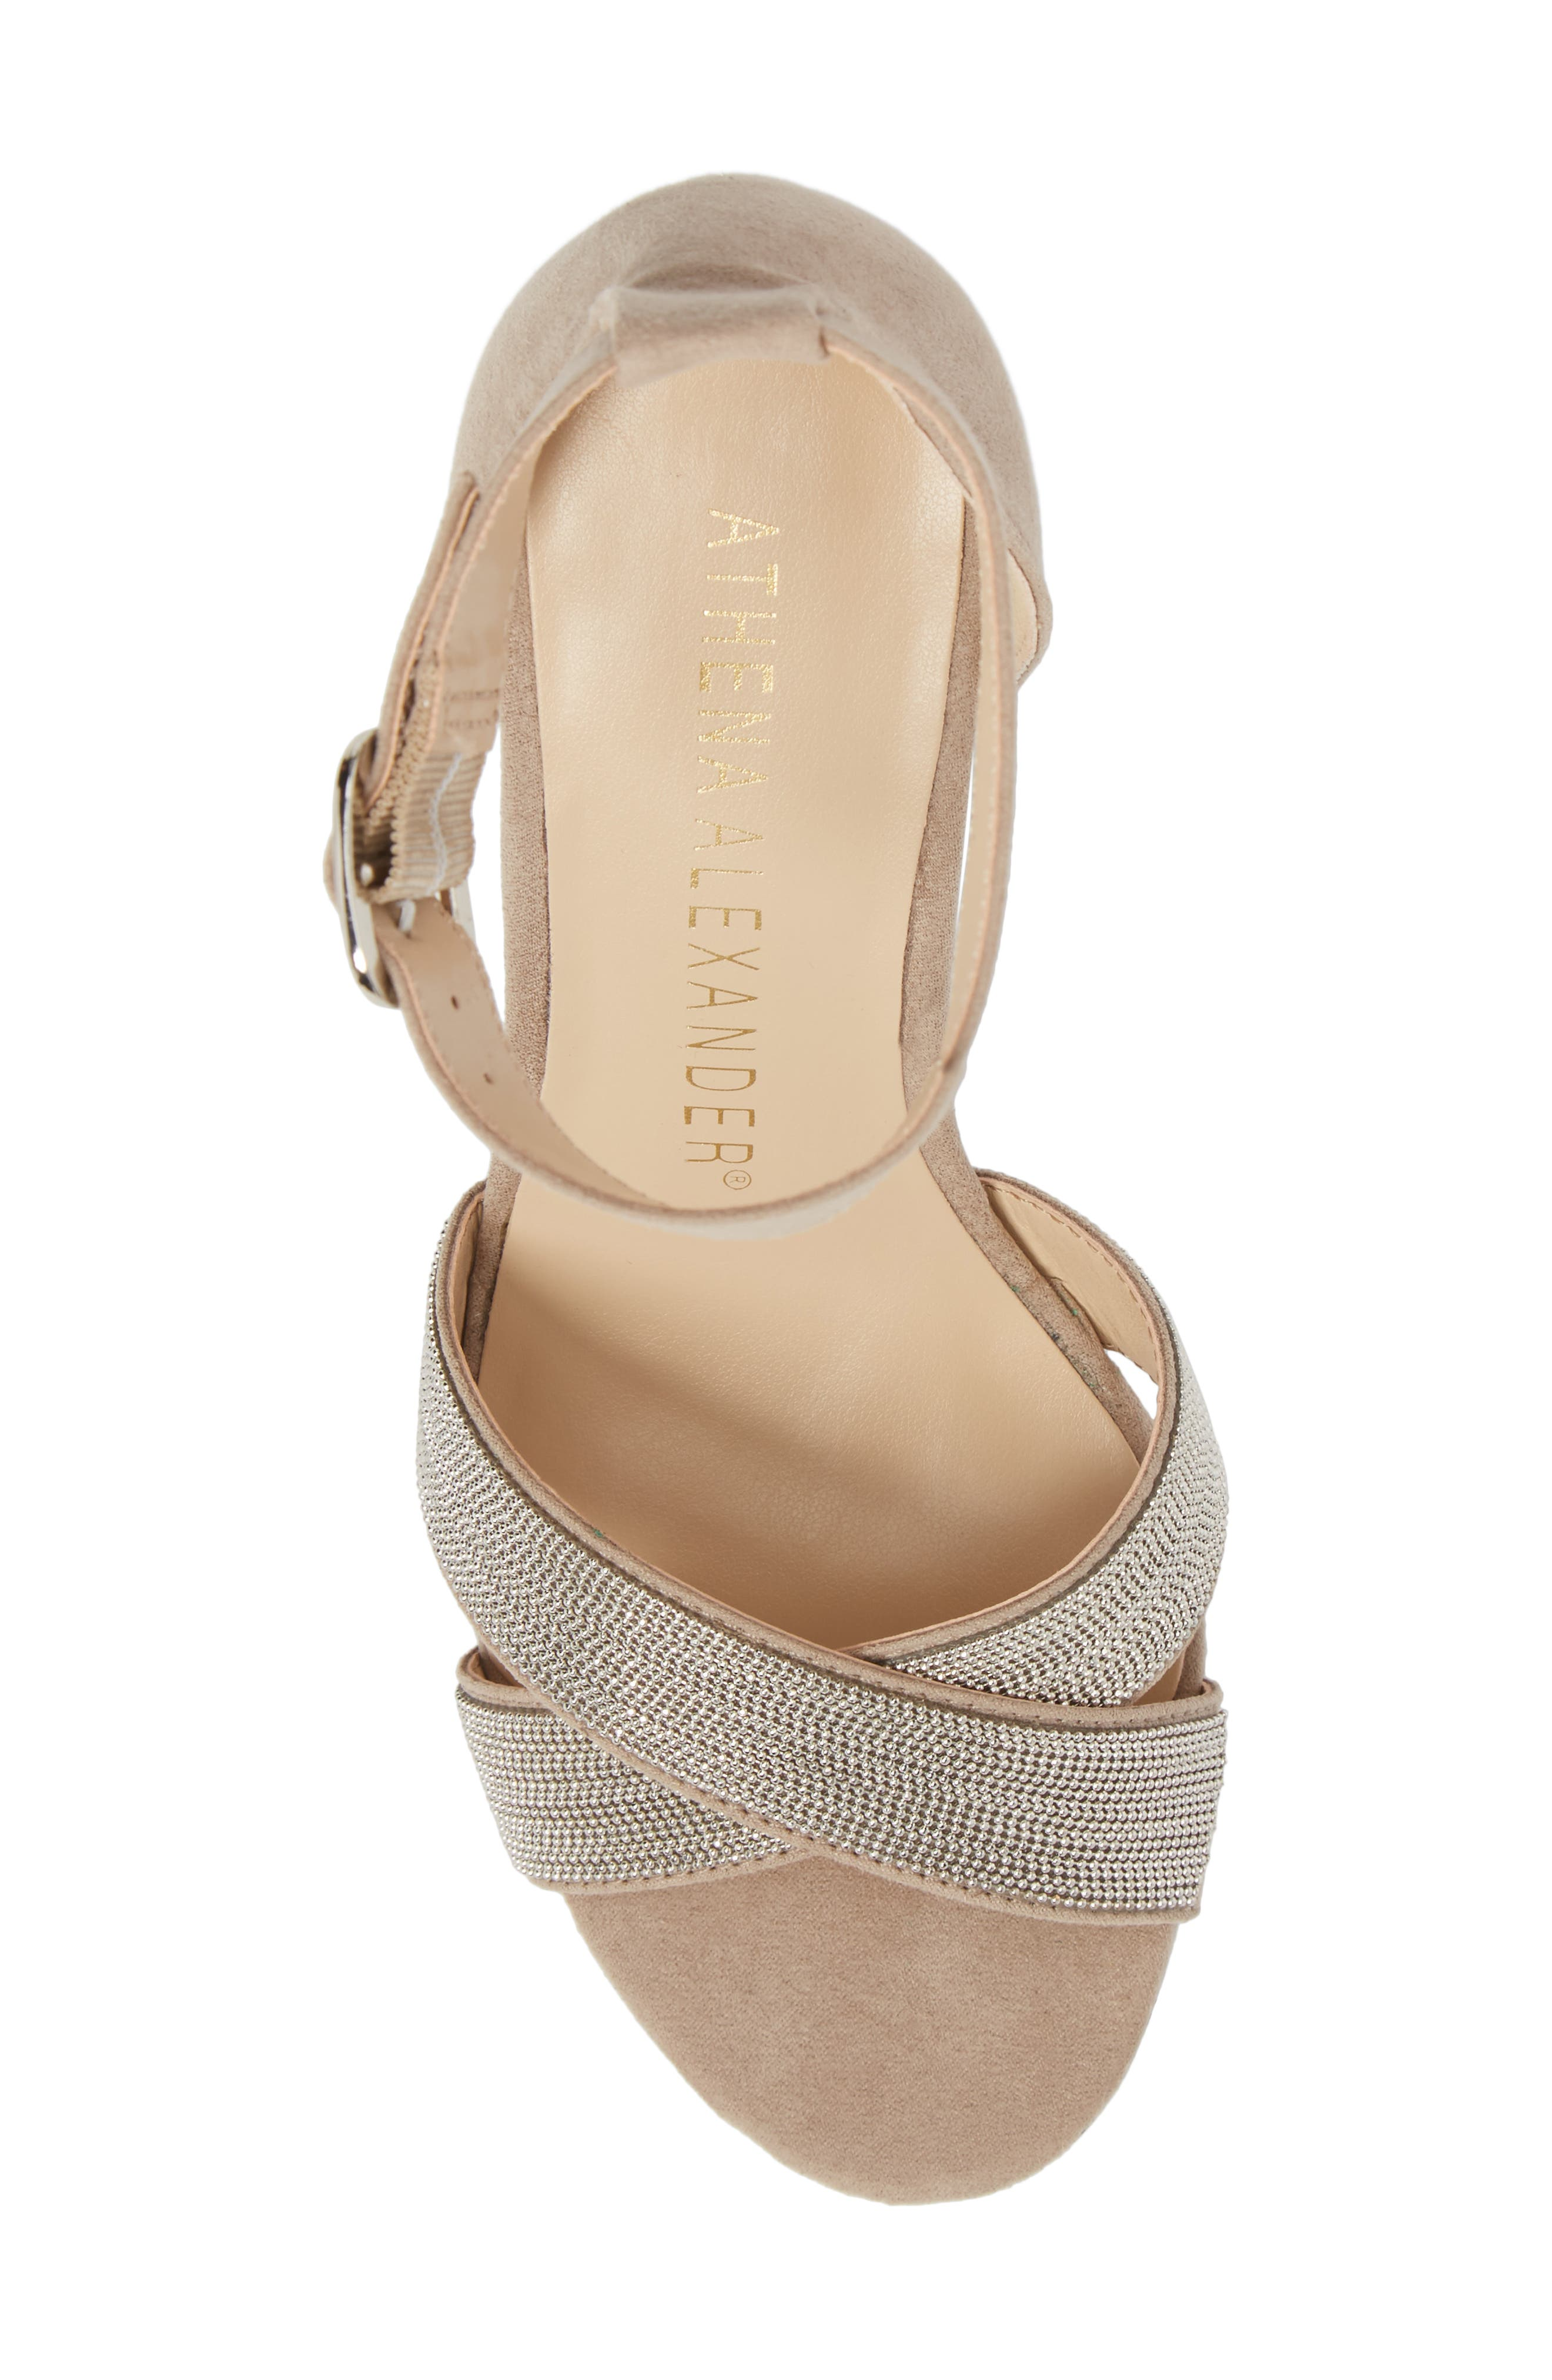 Zorra Wedge Sandal,                             Alternate thumbnail 5, color,                             TAUPE SUEDE